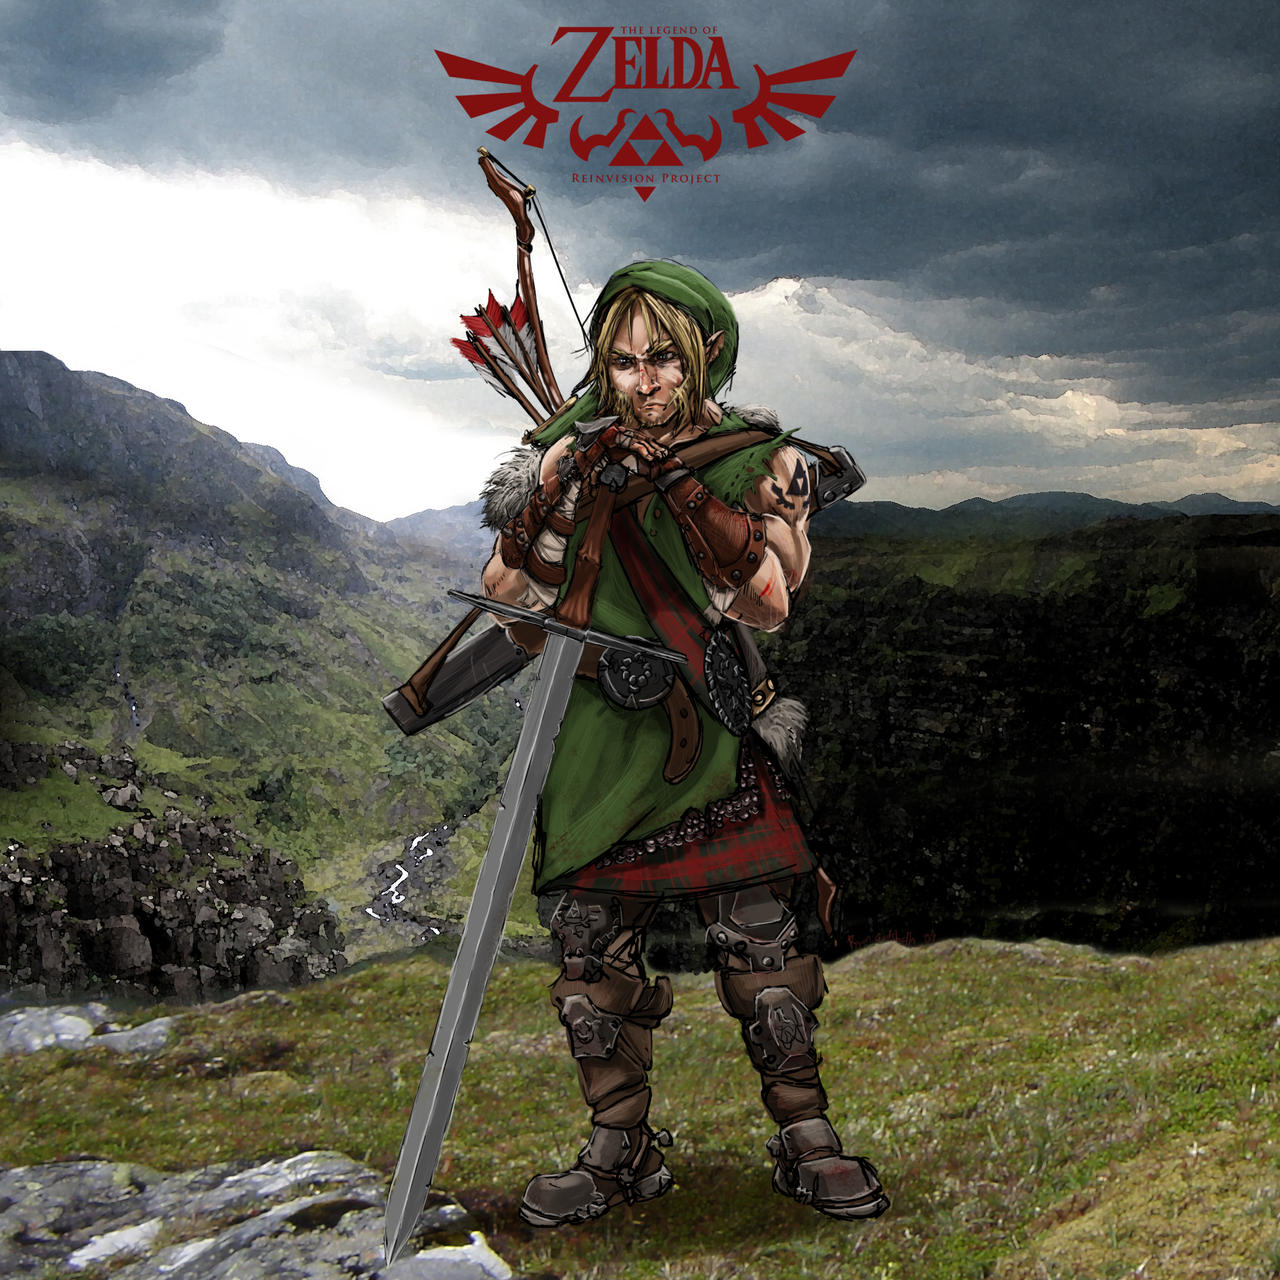 Legend of Zelda: Link Concept